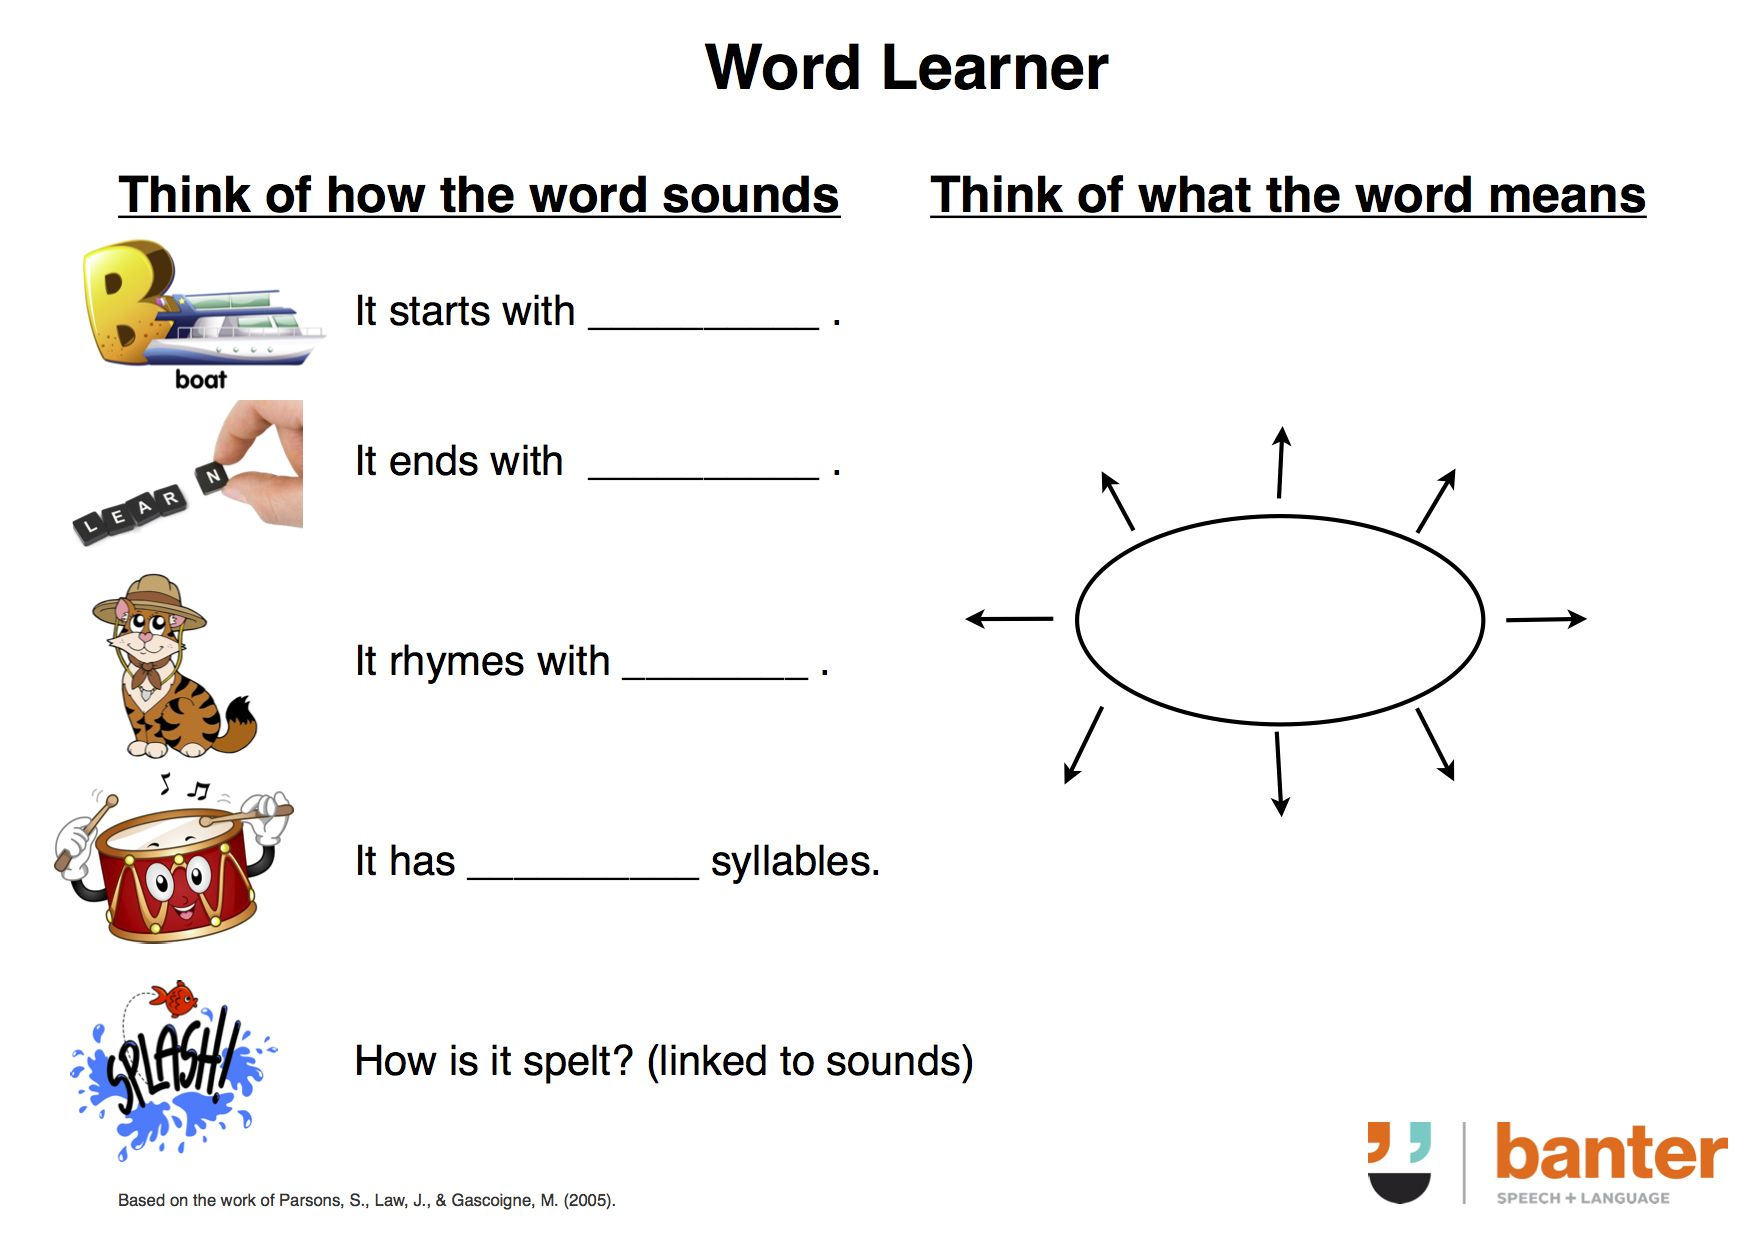 Slp An Evidence Based Free Worksheet To Help Children Learn New Words